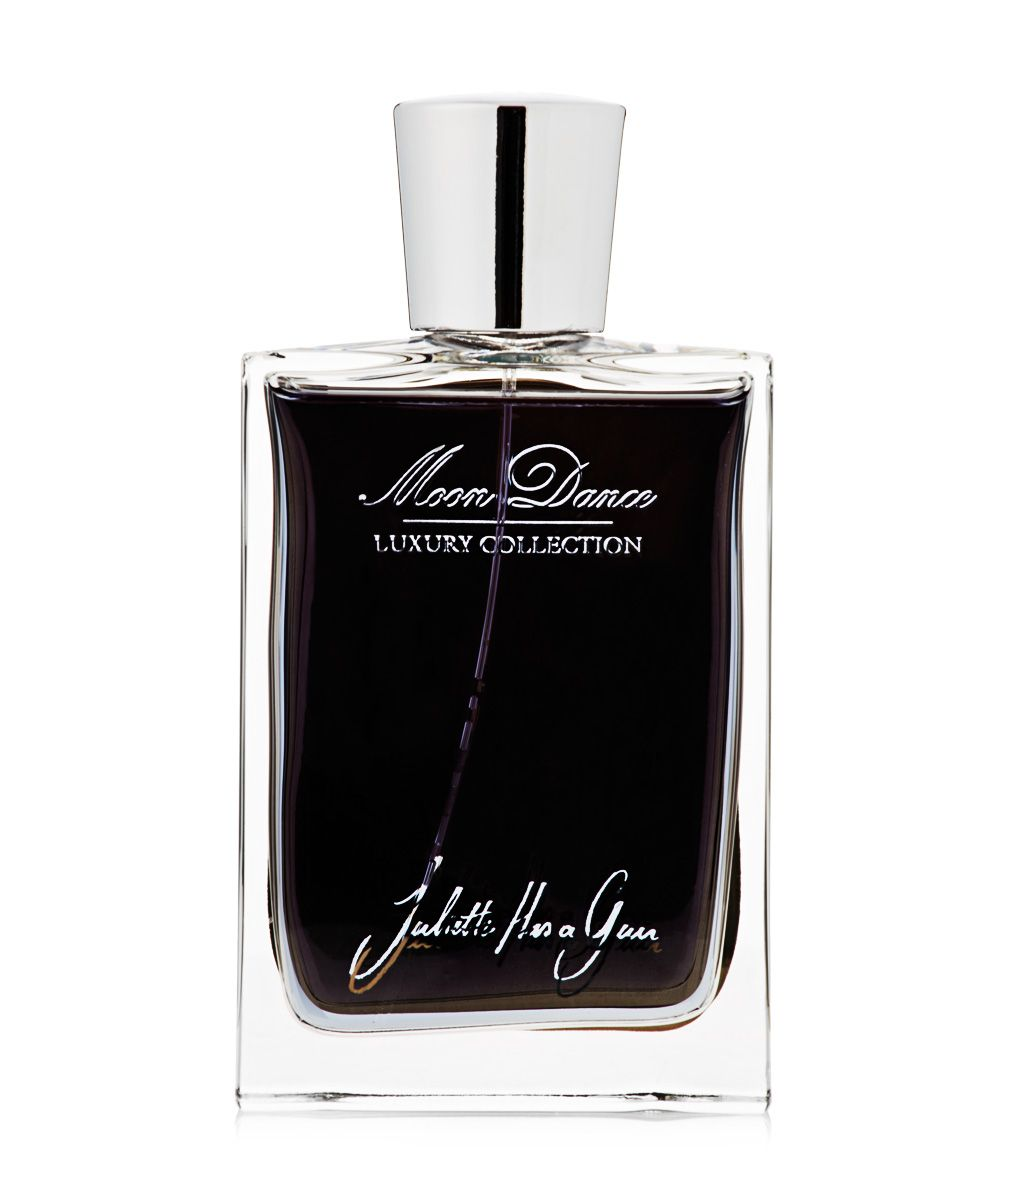 Juliette Has A Gun Luxury Collection Moon Dance Eau de Parfum bei Flaconi ✓ schneller Versand in 1-2 Tagen ✓ Gratisversand ✓ 2 Gratisproben | Jetzt Juliette Has A Gun Luxury Collection Moon Dance Eau de Parfum